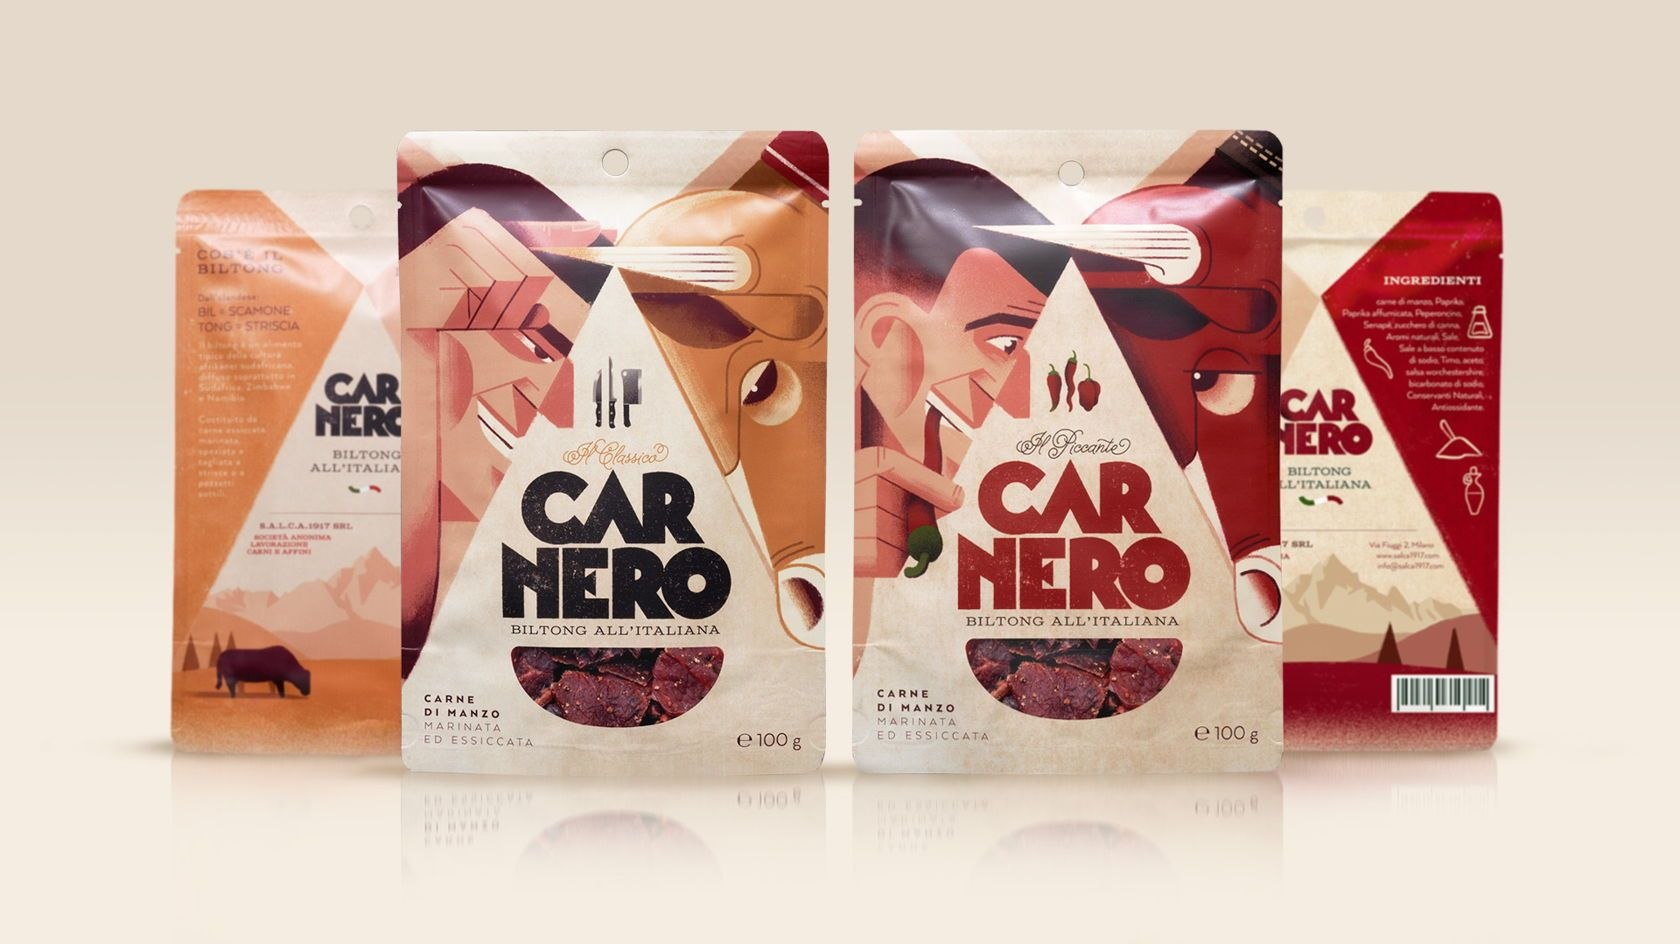 Carnero S Illustrations Beef Up Their Glorious Packaging Creative Packaging Design Packaging Design Packaging Design Inspiration